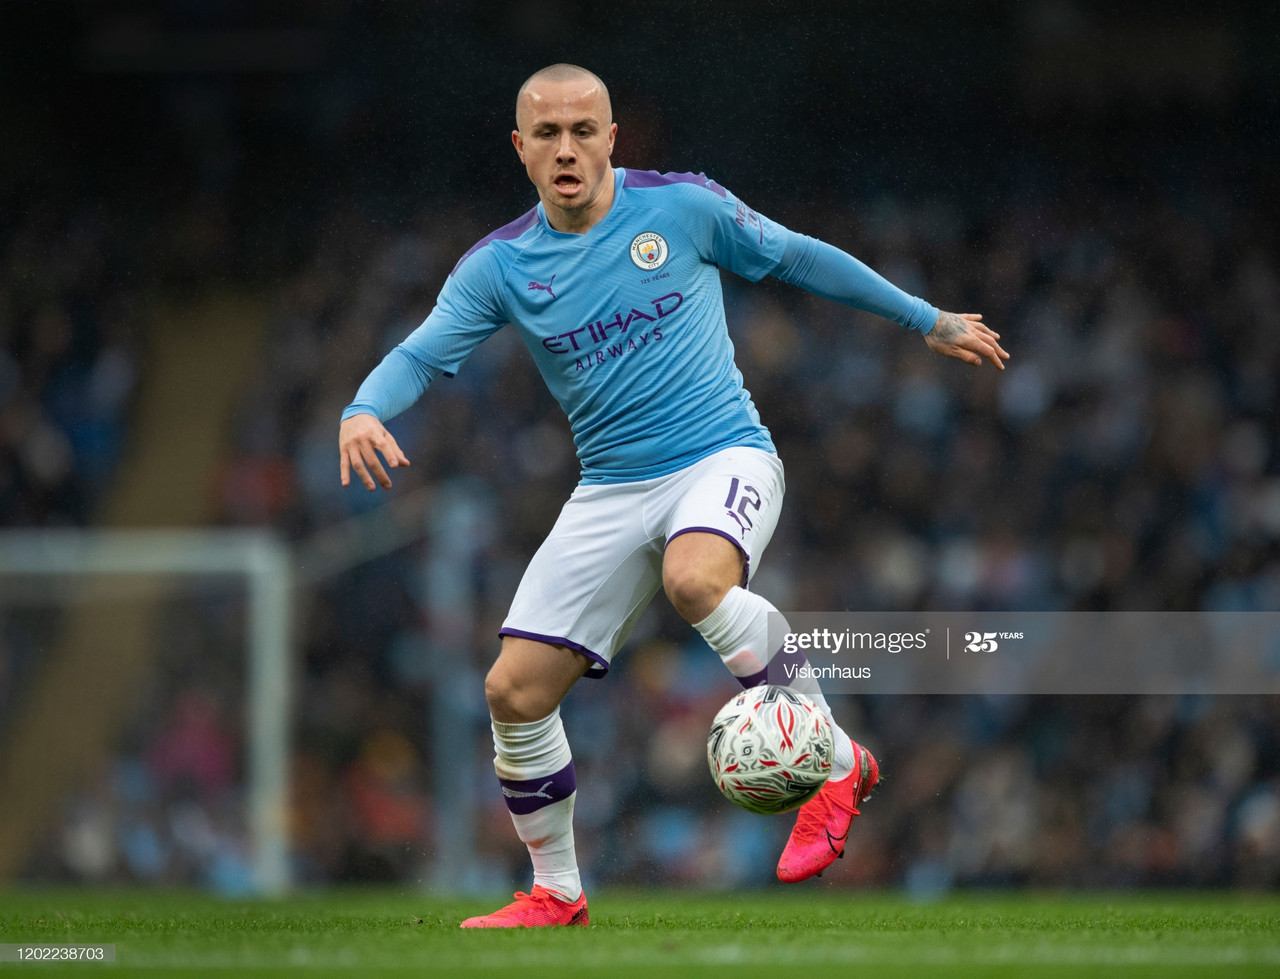 What will the future hold for Manchester City's Angeliño?